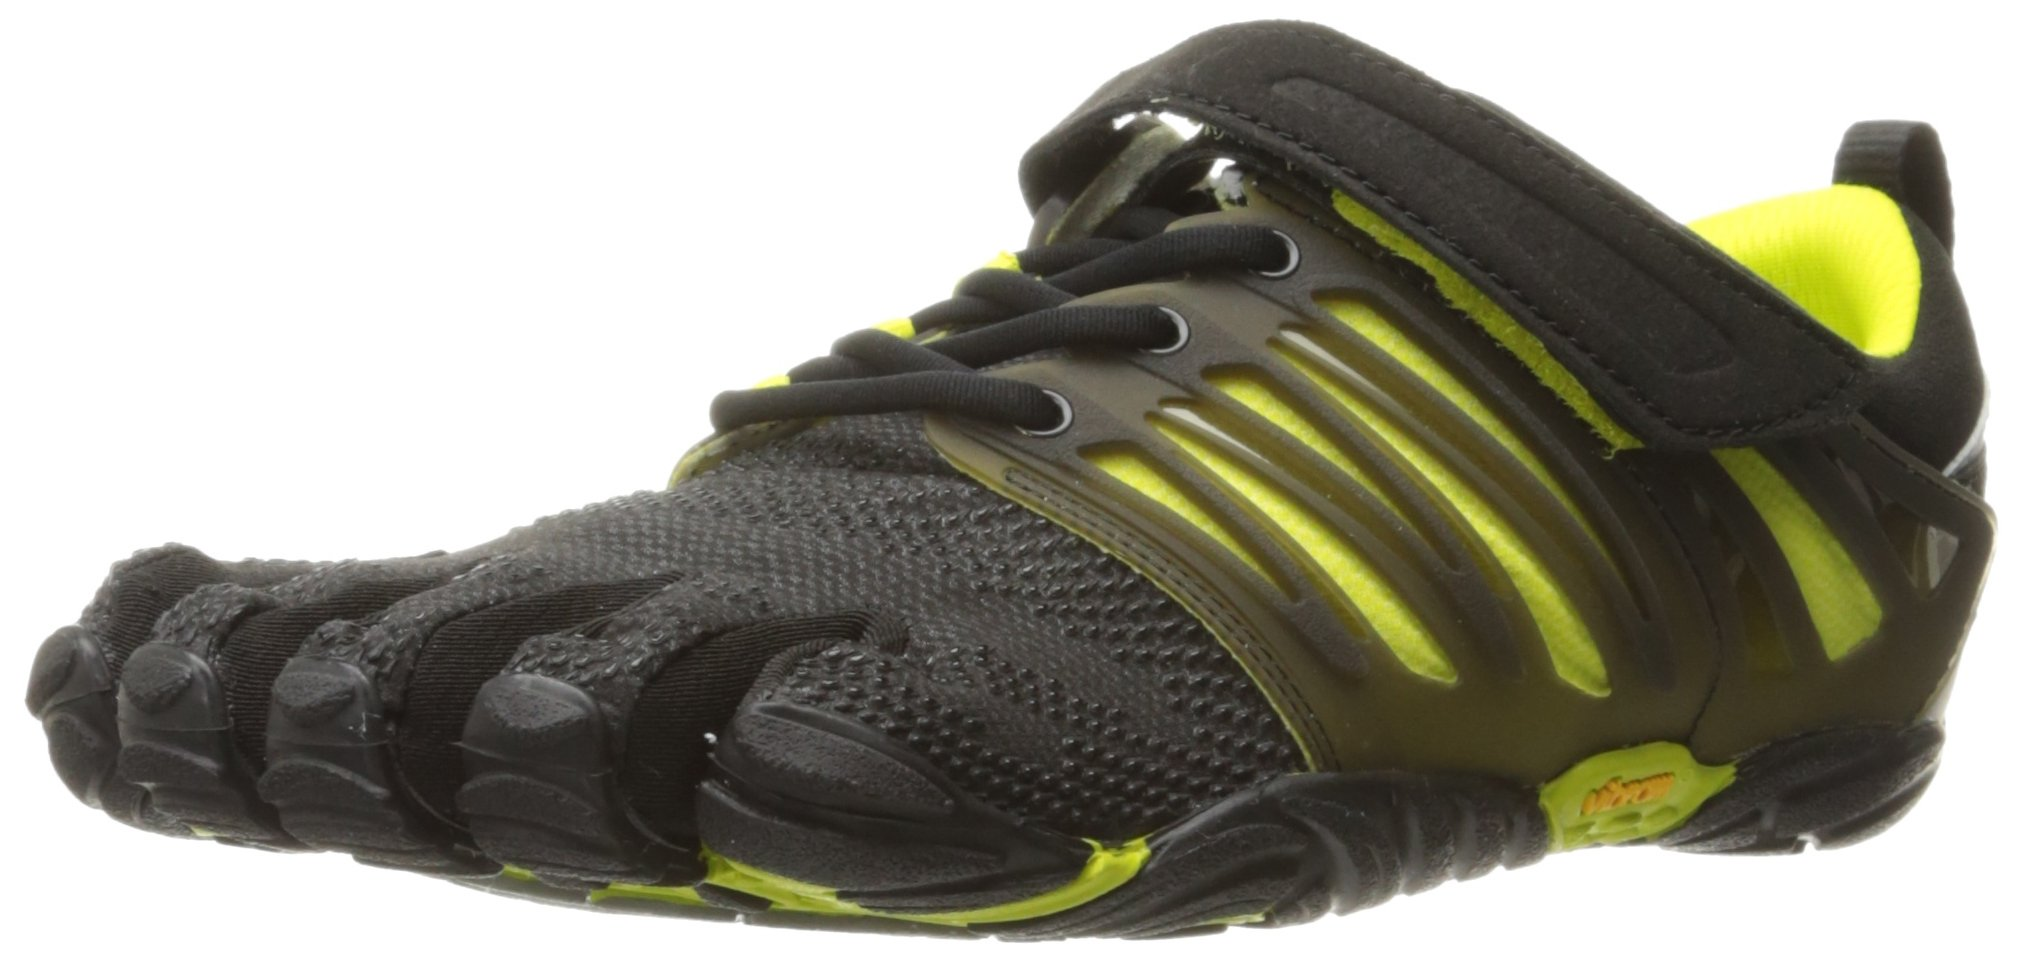 Vibram Men's V-Train Cross-Trainer Shoe, Black/Green, 50 EU by Vibram